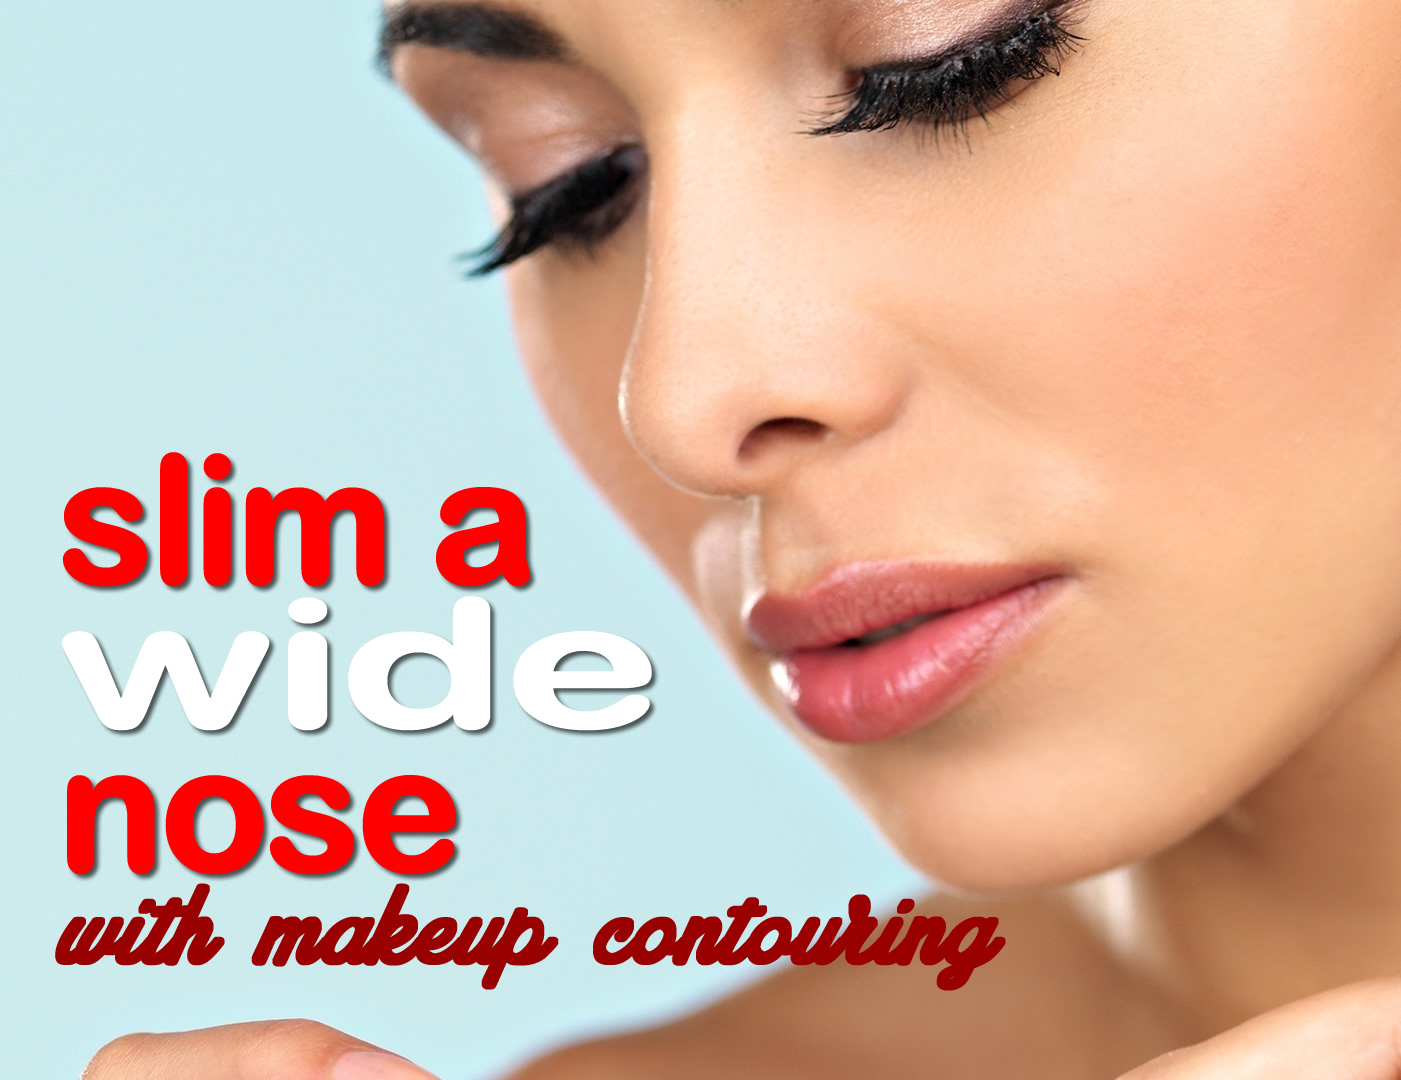 How To Make Your Nose Look Smaller With Makeup Makeup Tips Nose Makeup  Video Images